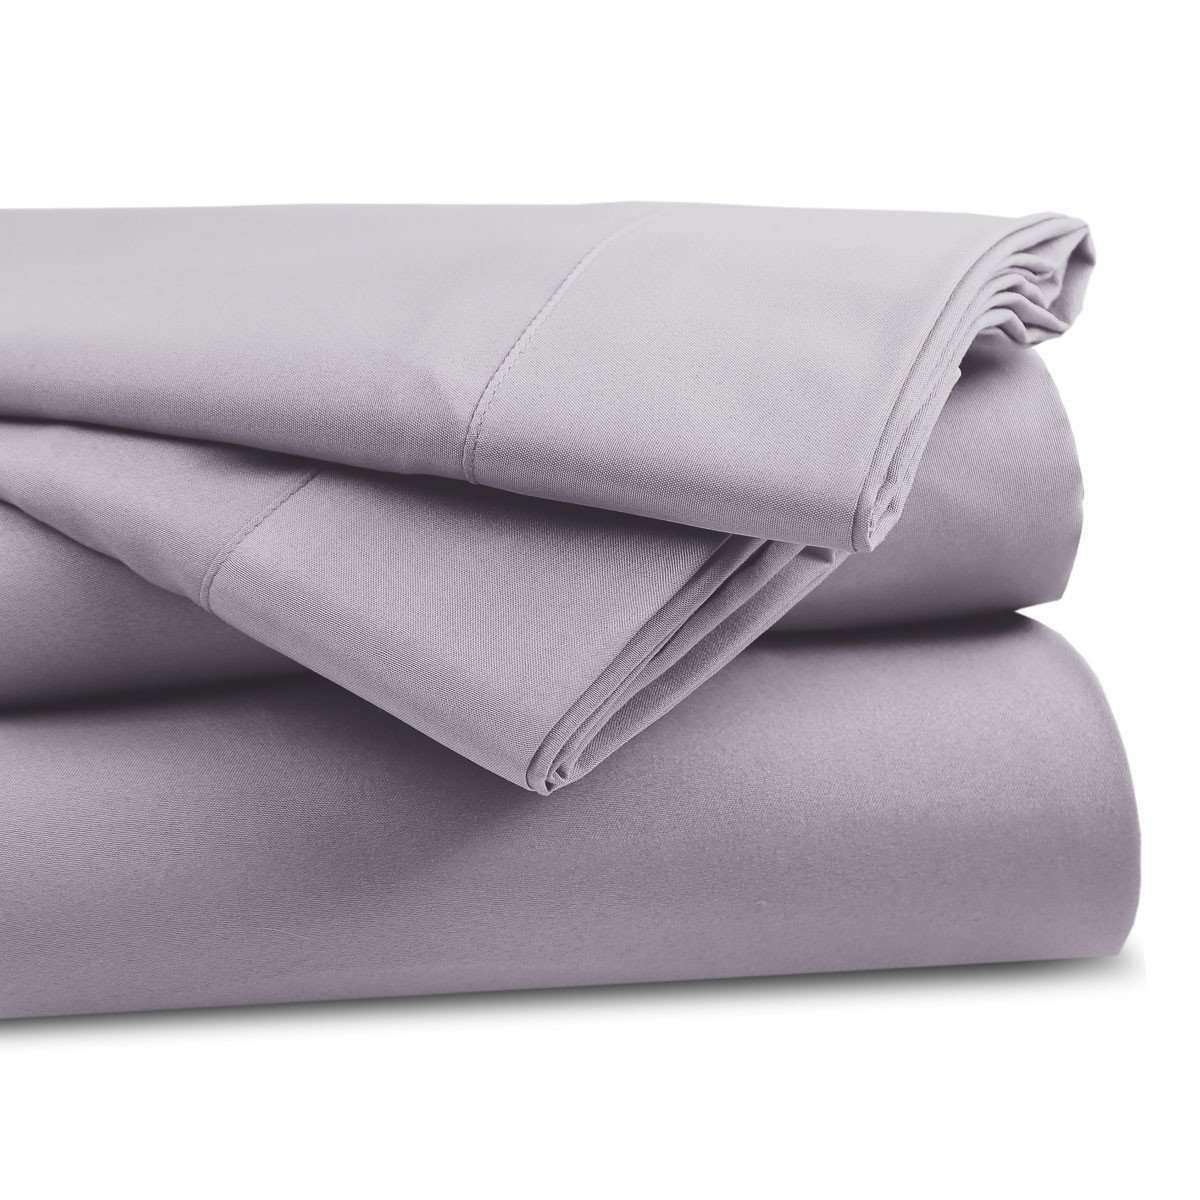 Luminoso Castello Microfiber Sheet Set